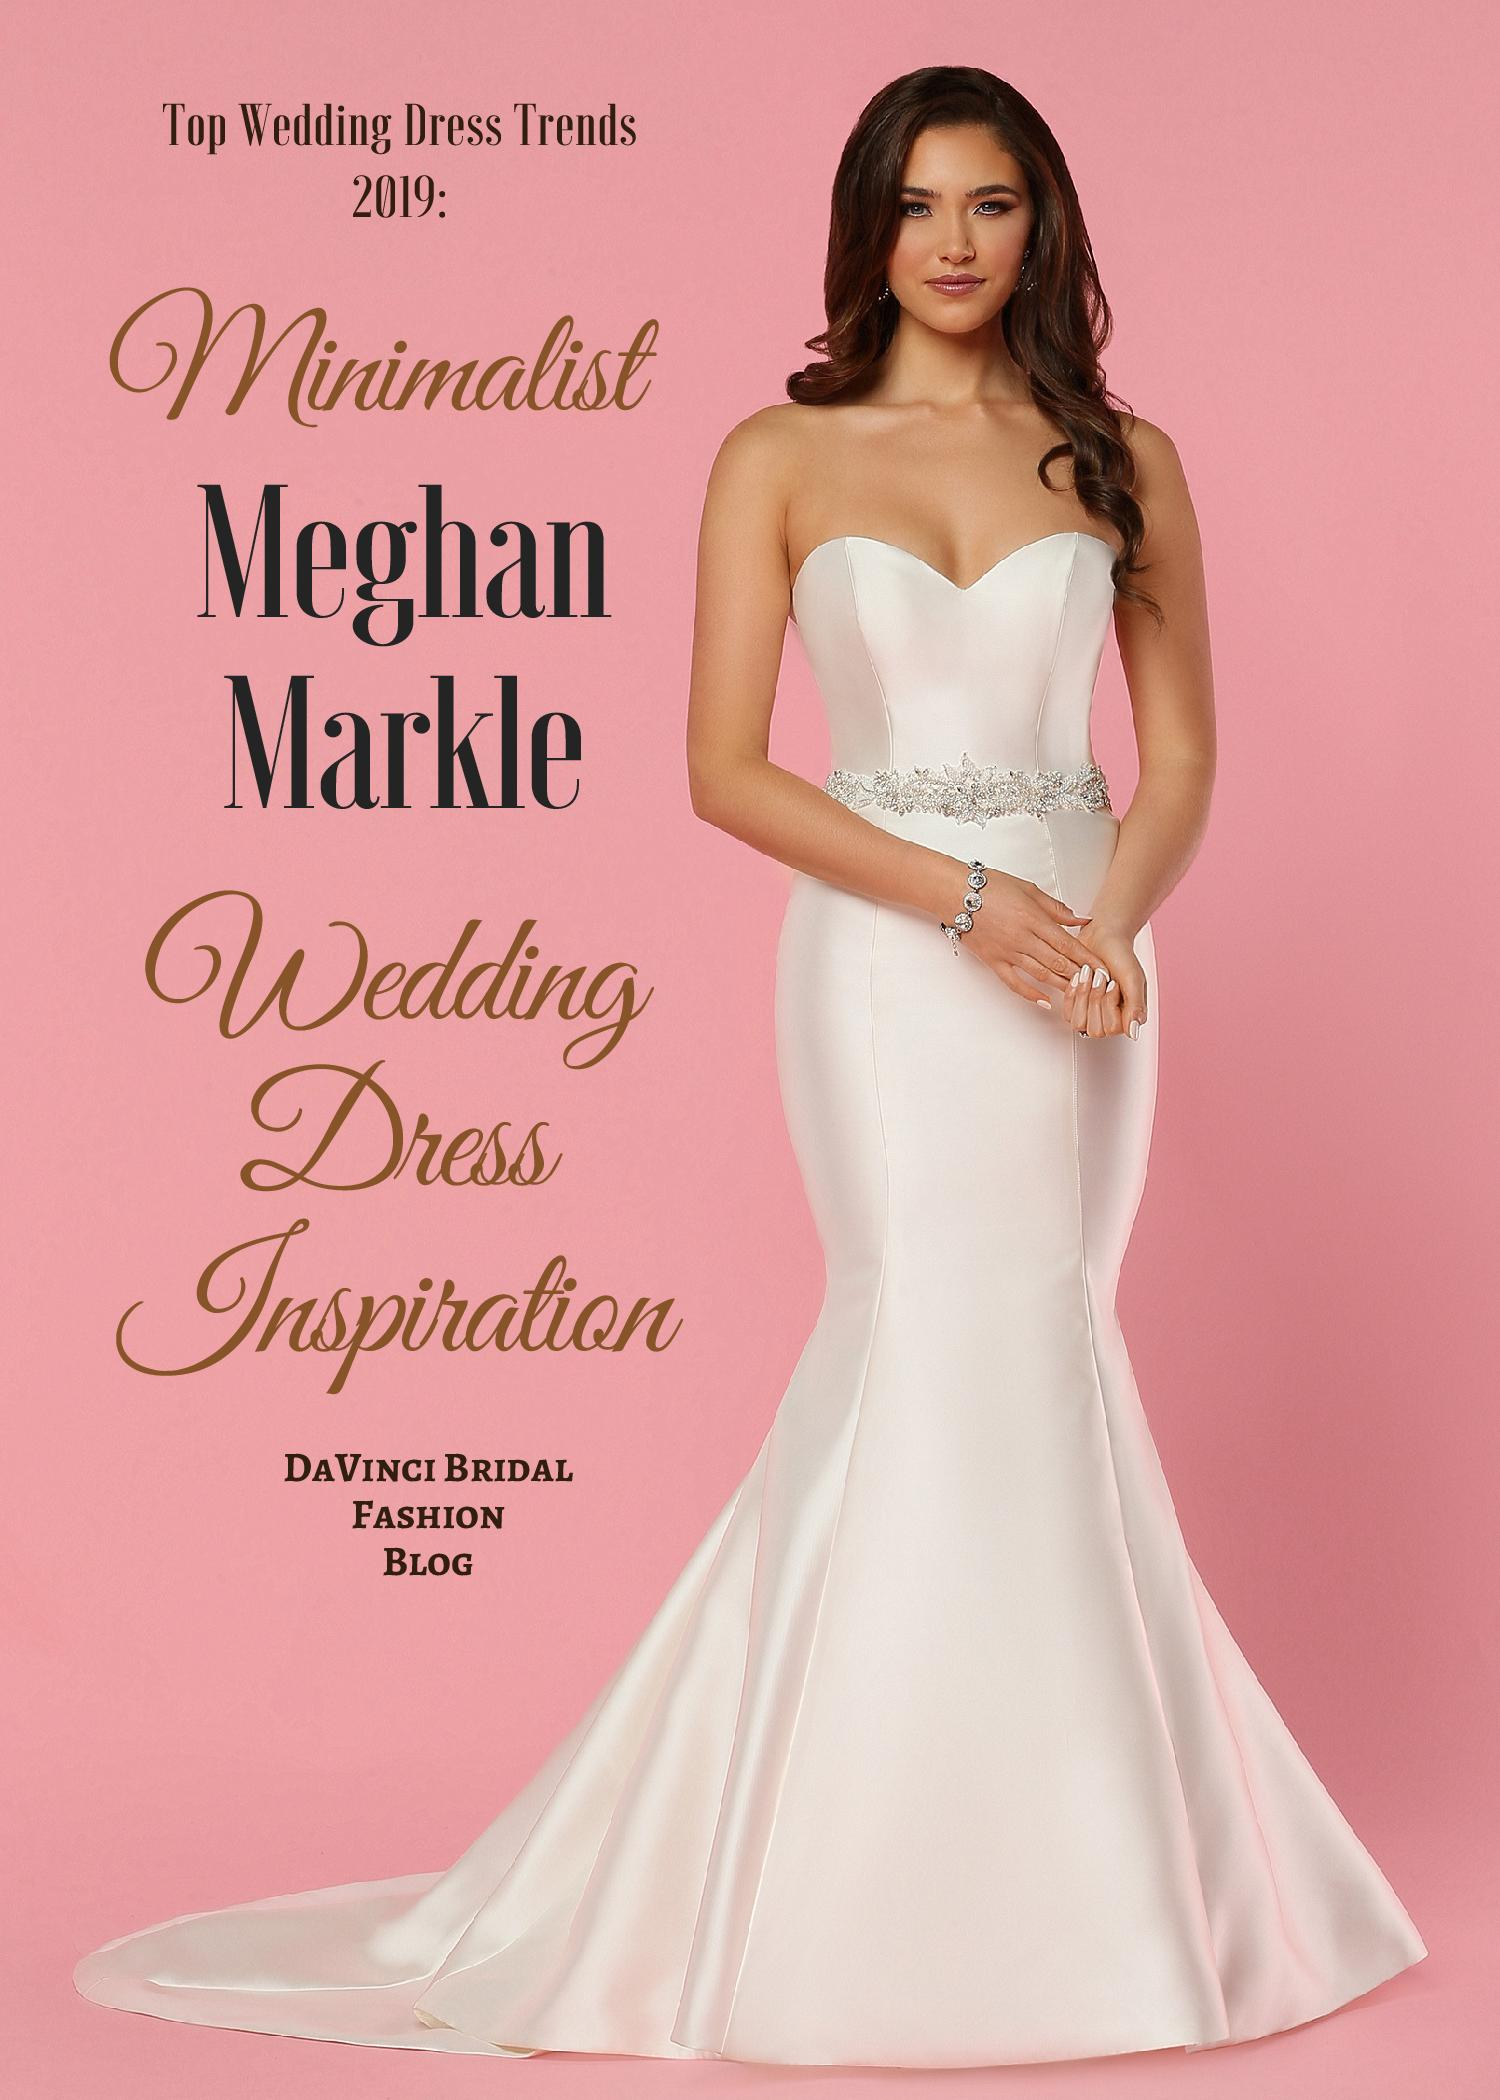 Top Wedding Dress Trends For 2019 Meghan Markle Style €� Davinci Bridal Fashion Blog: Edgy Tea Length Wedding Dresses At Reisefeber.org